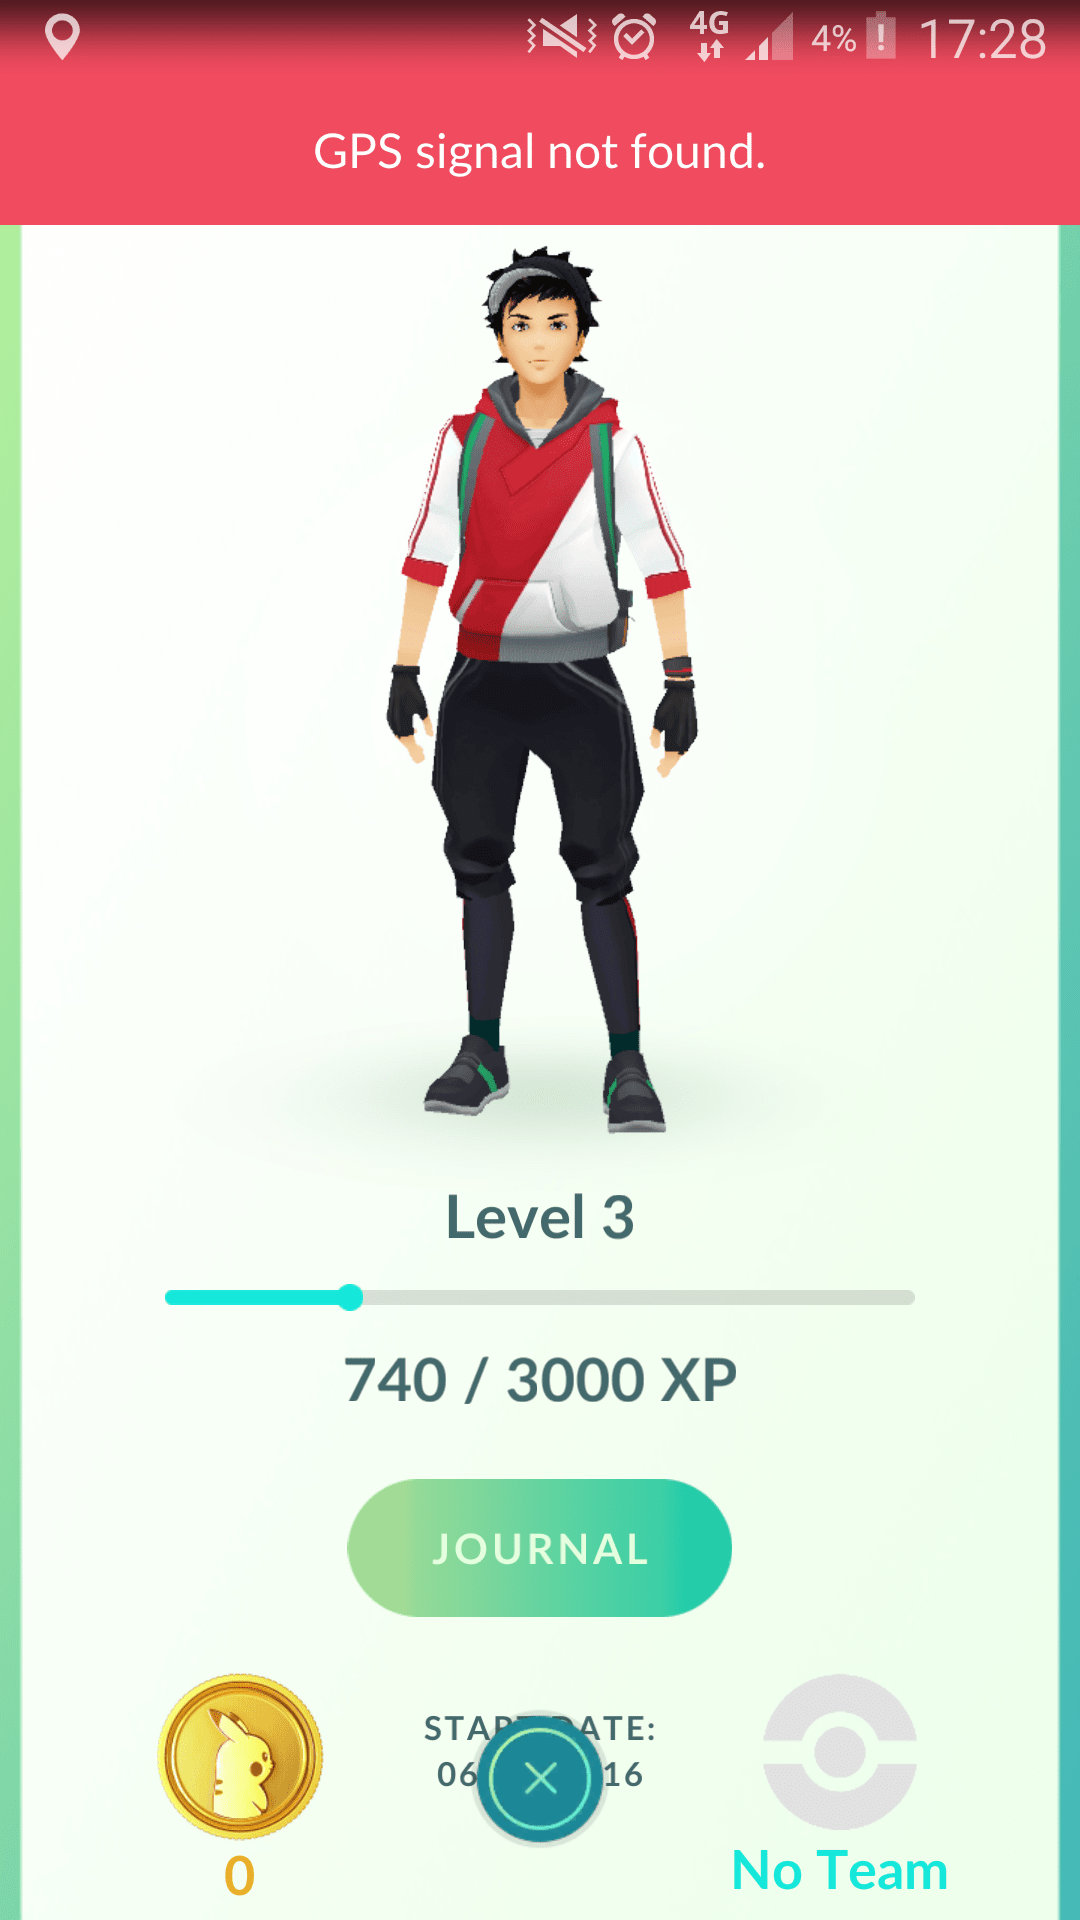 Pokemon go user profile